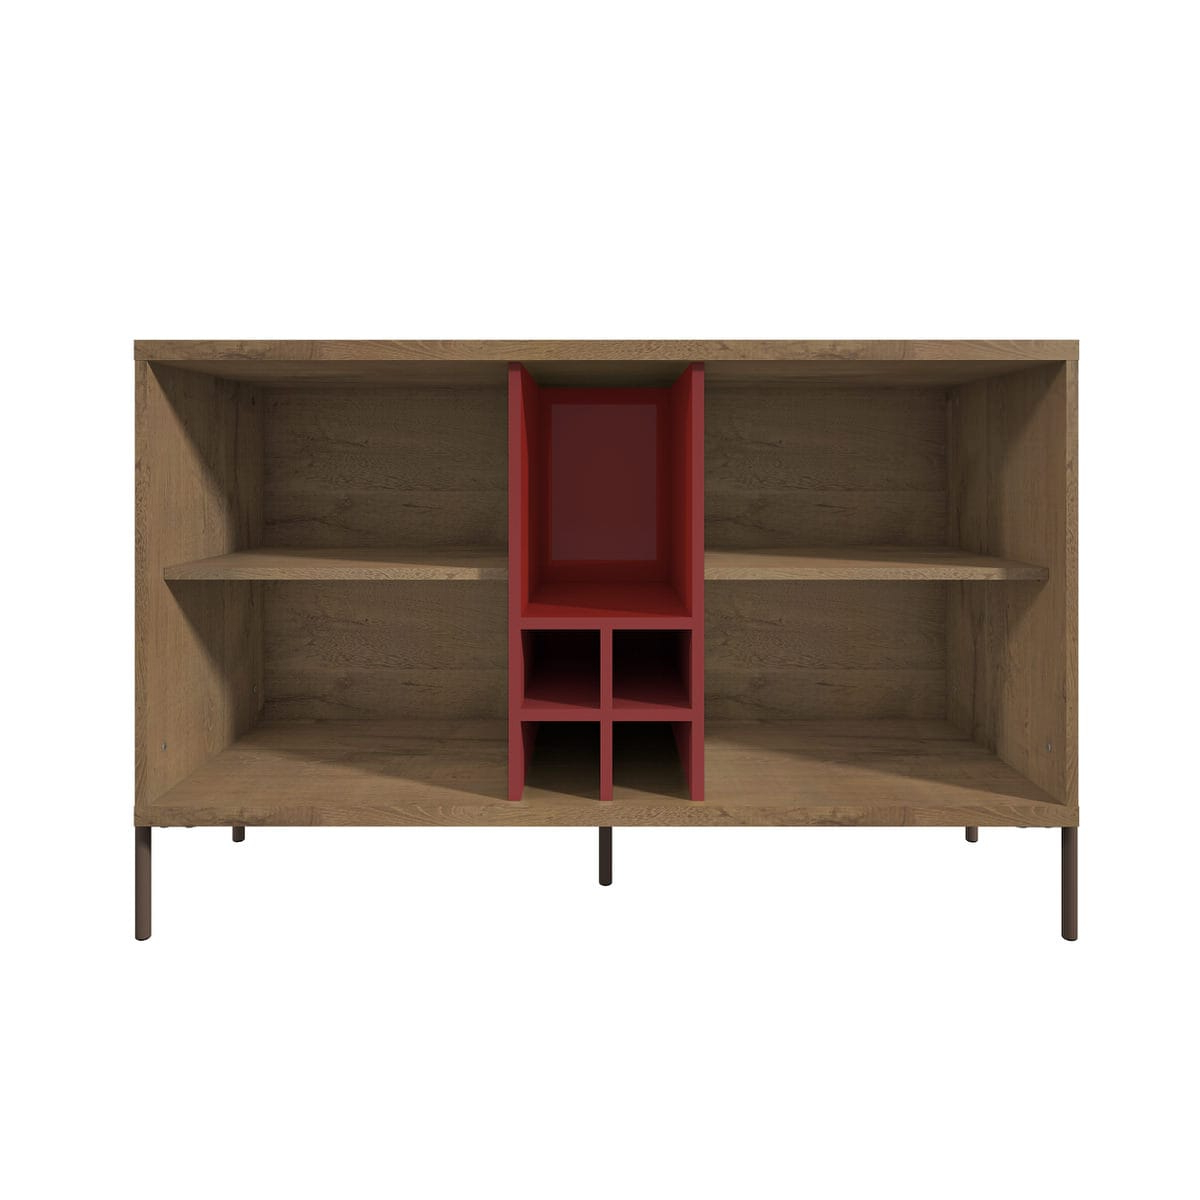 Joy Red & Off White 4 Bottle Wine Buffet Standmanhattan Comfort Pertaining To Modern Red Buffets (Gallery 13 of 20)